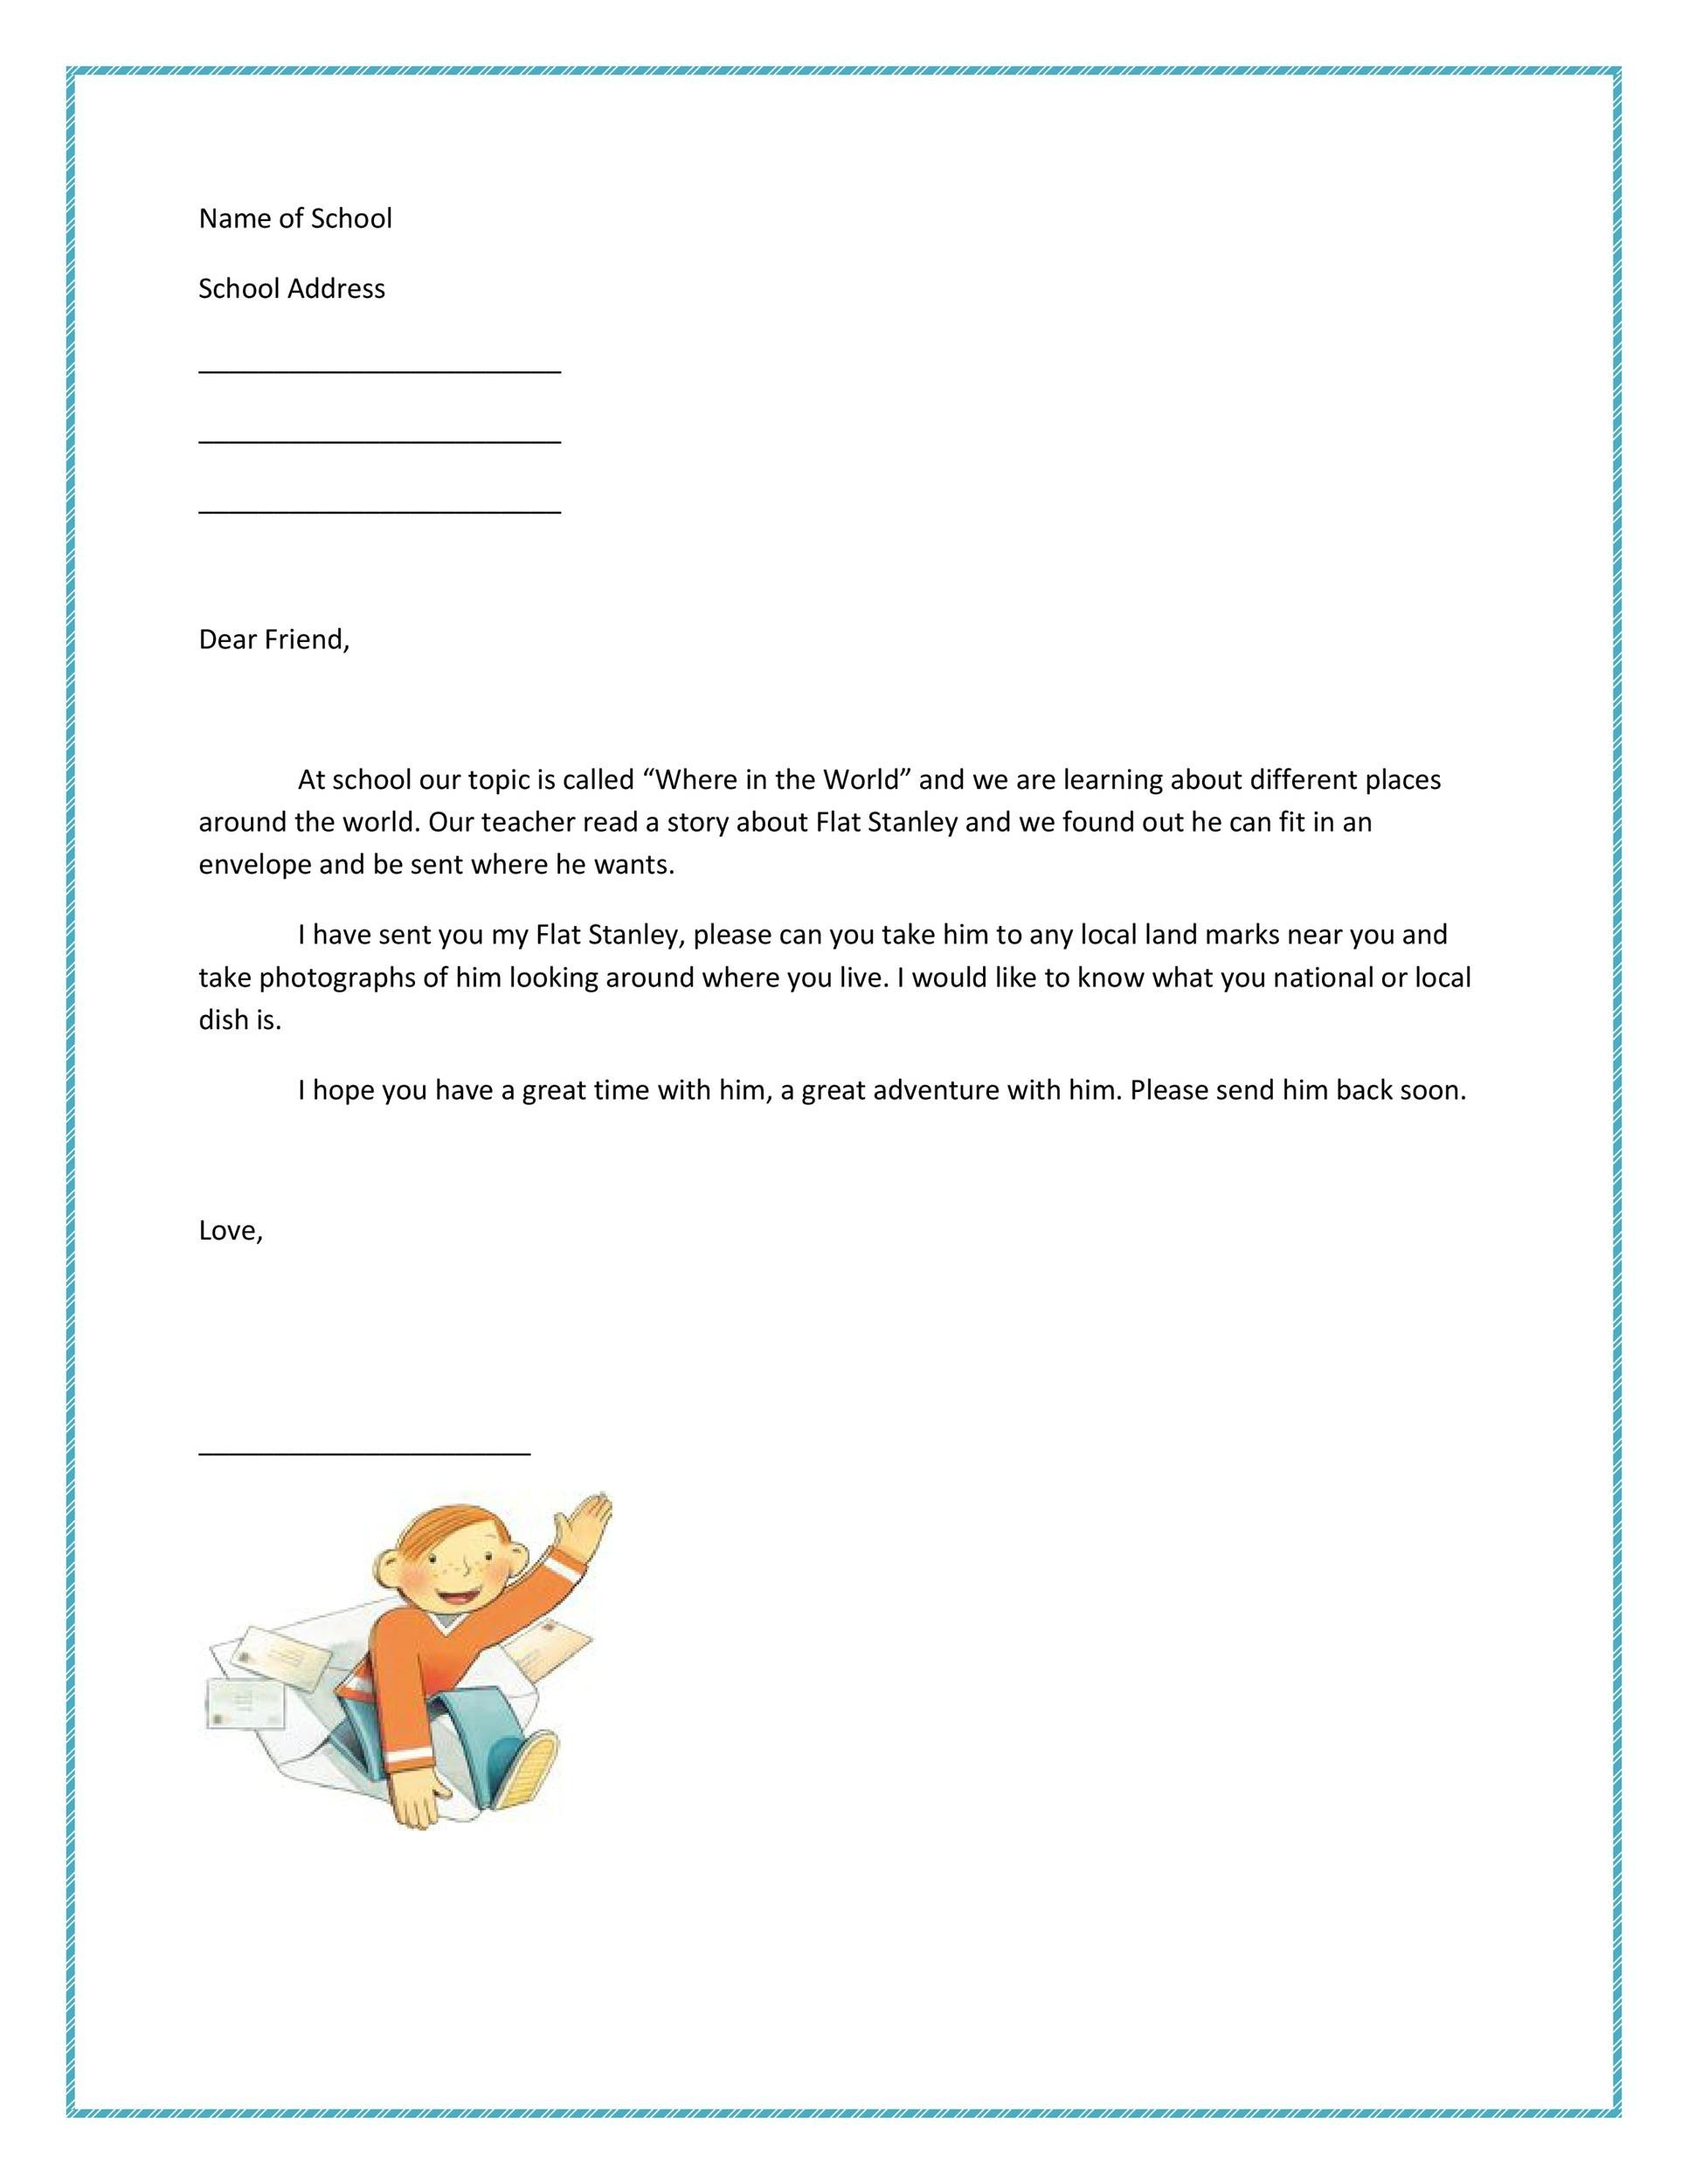 Free Flat Stanley template 12